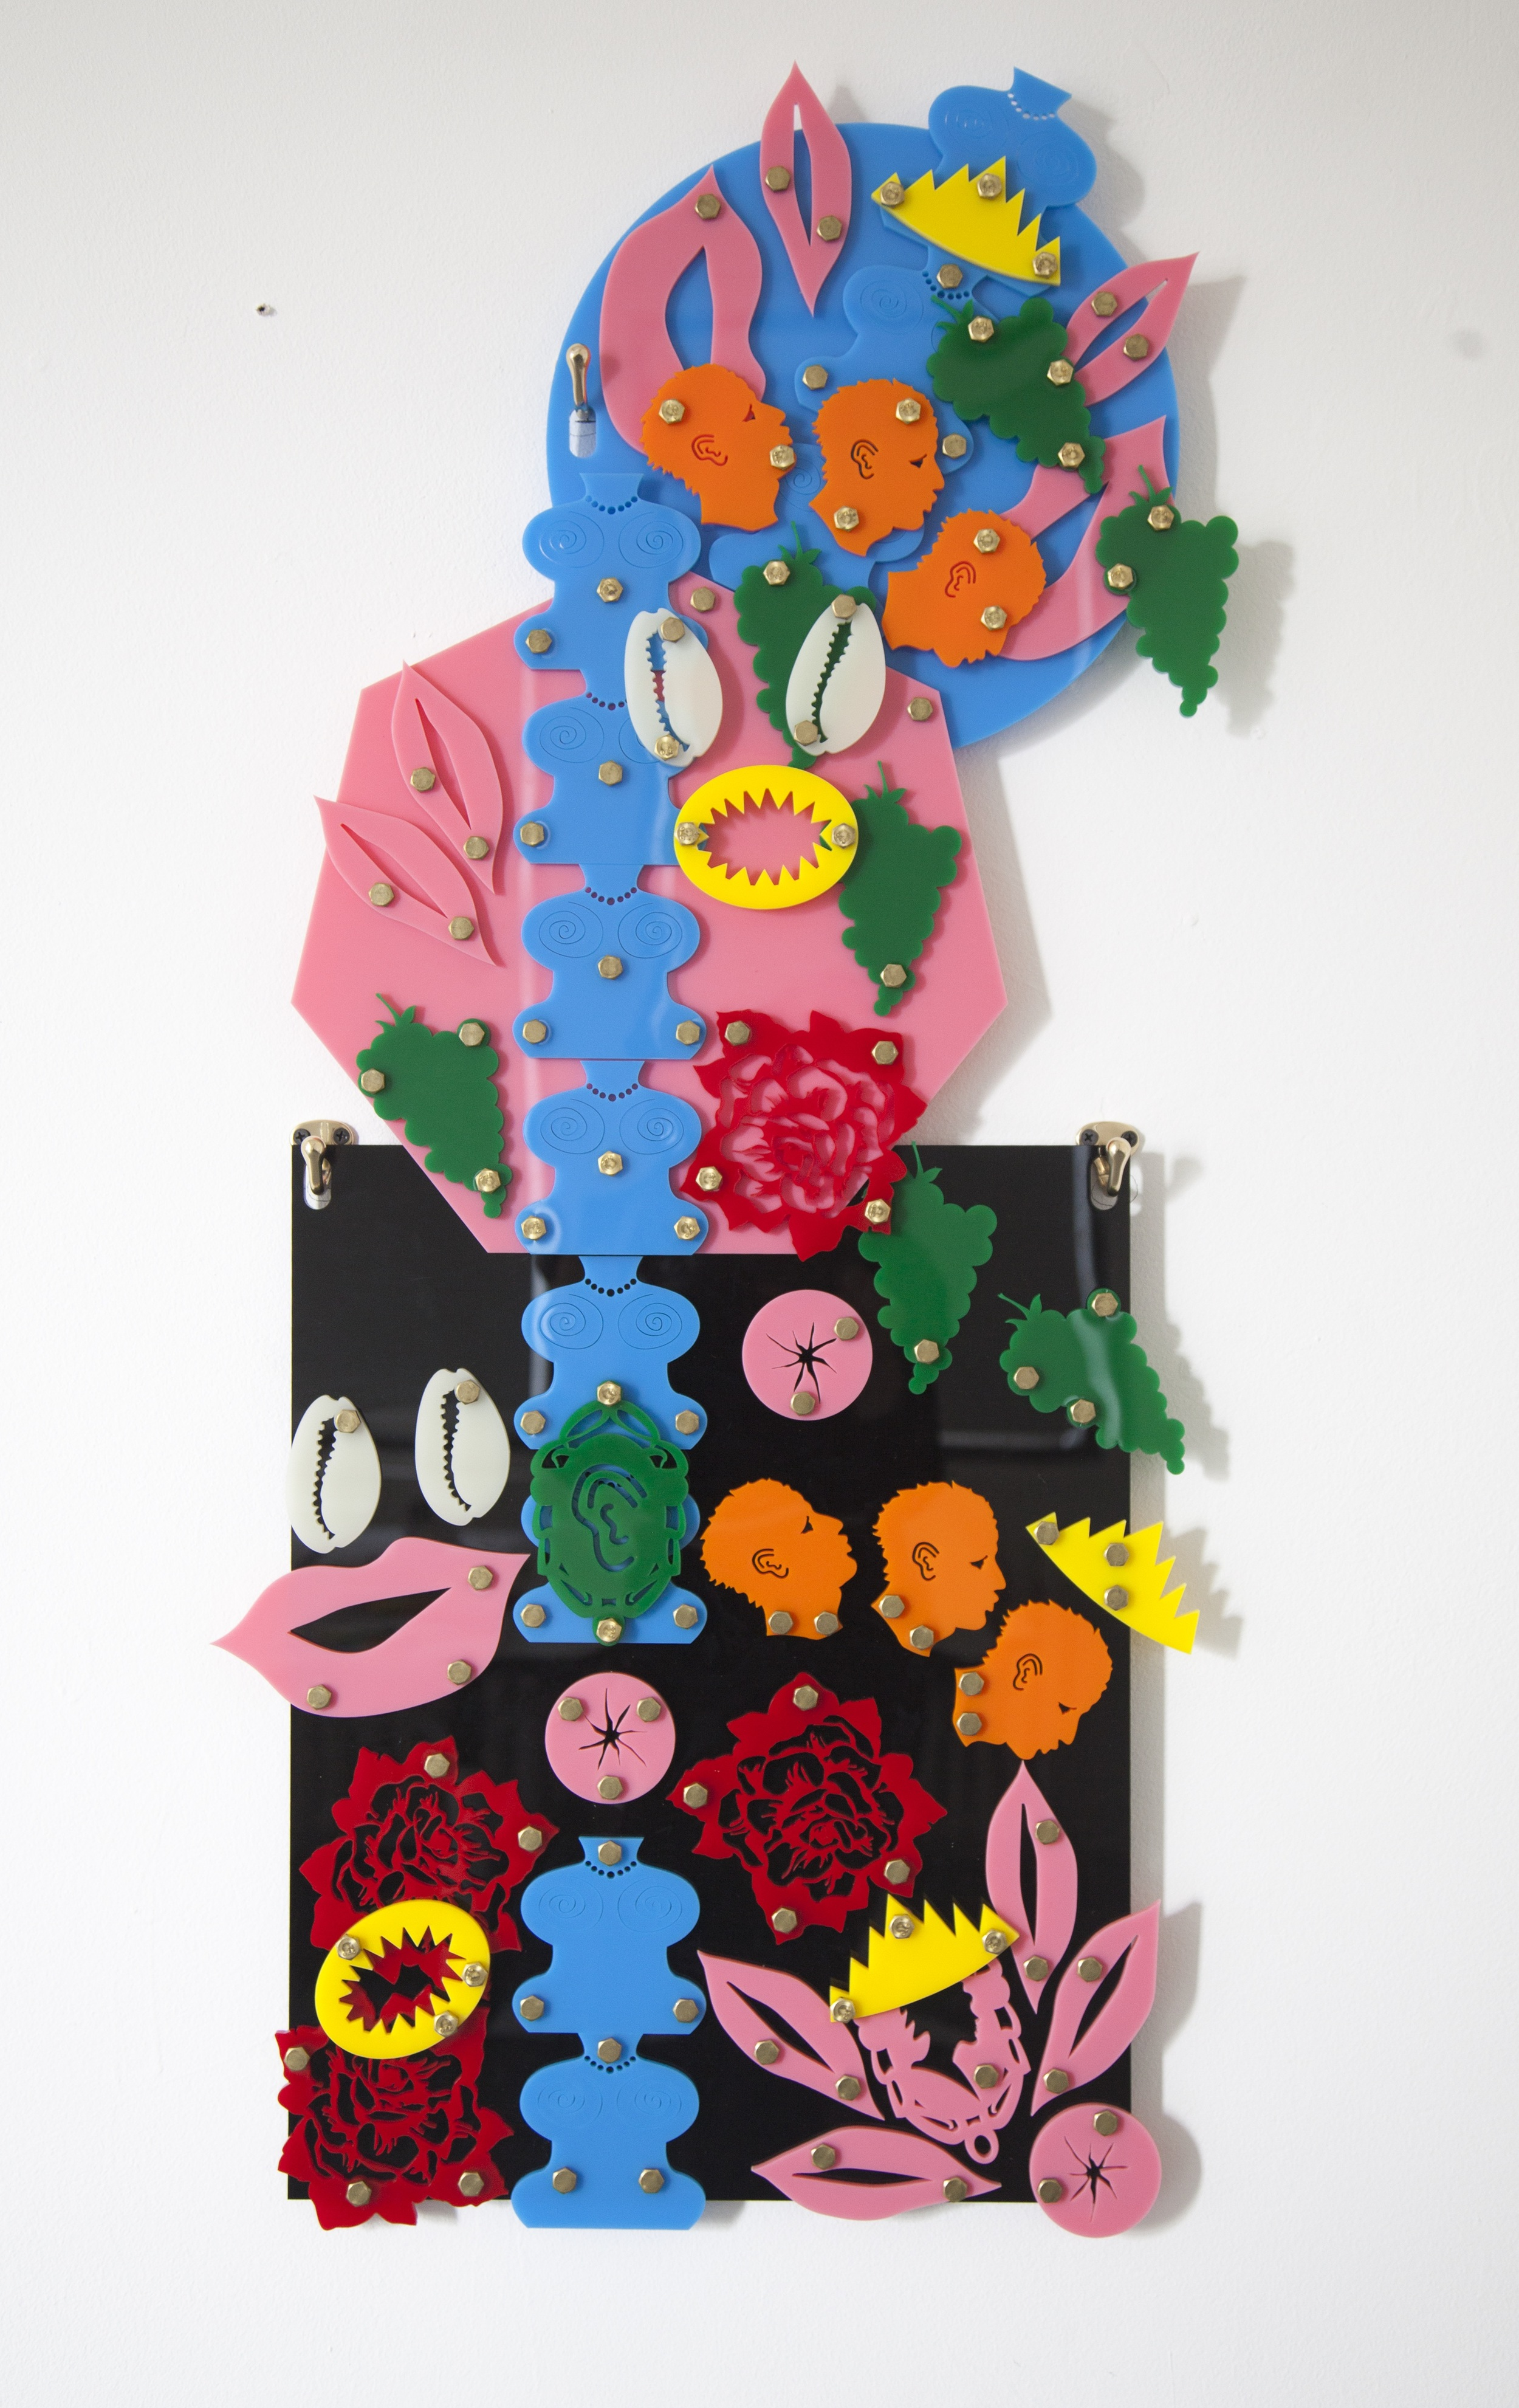 Tower of Hips  (Blackamoors Collage #9), 2014  Plexiglass and brass  19.5 x 41 inches